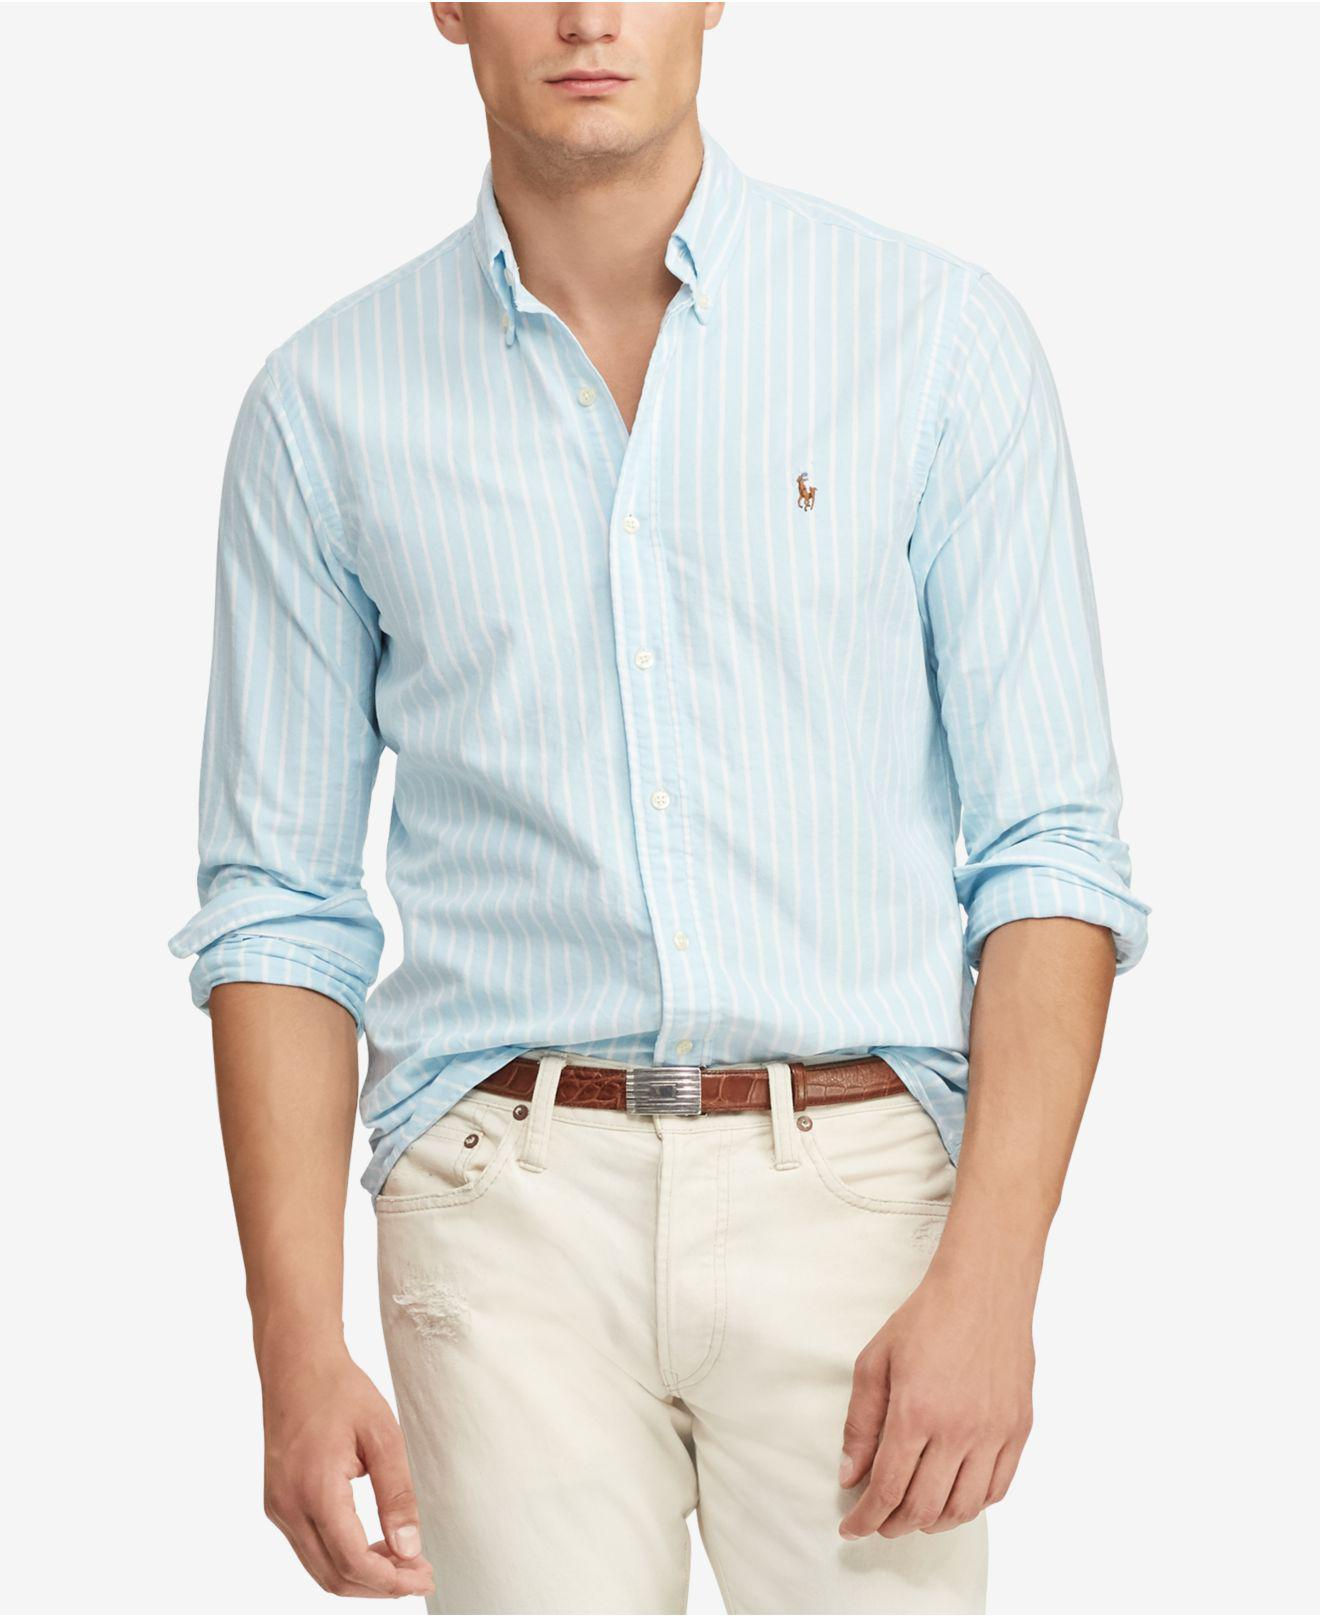 0a774a0cef8 Lyst - Polo Ralph Lauren Classic Fit Striped Shirt in Blue for Men ...